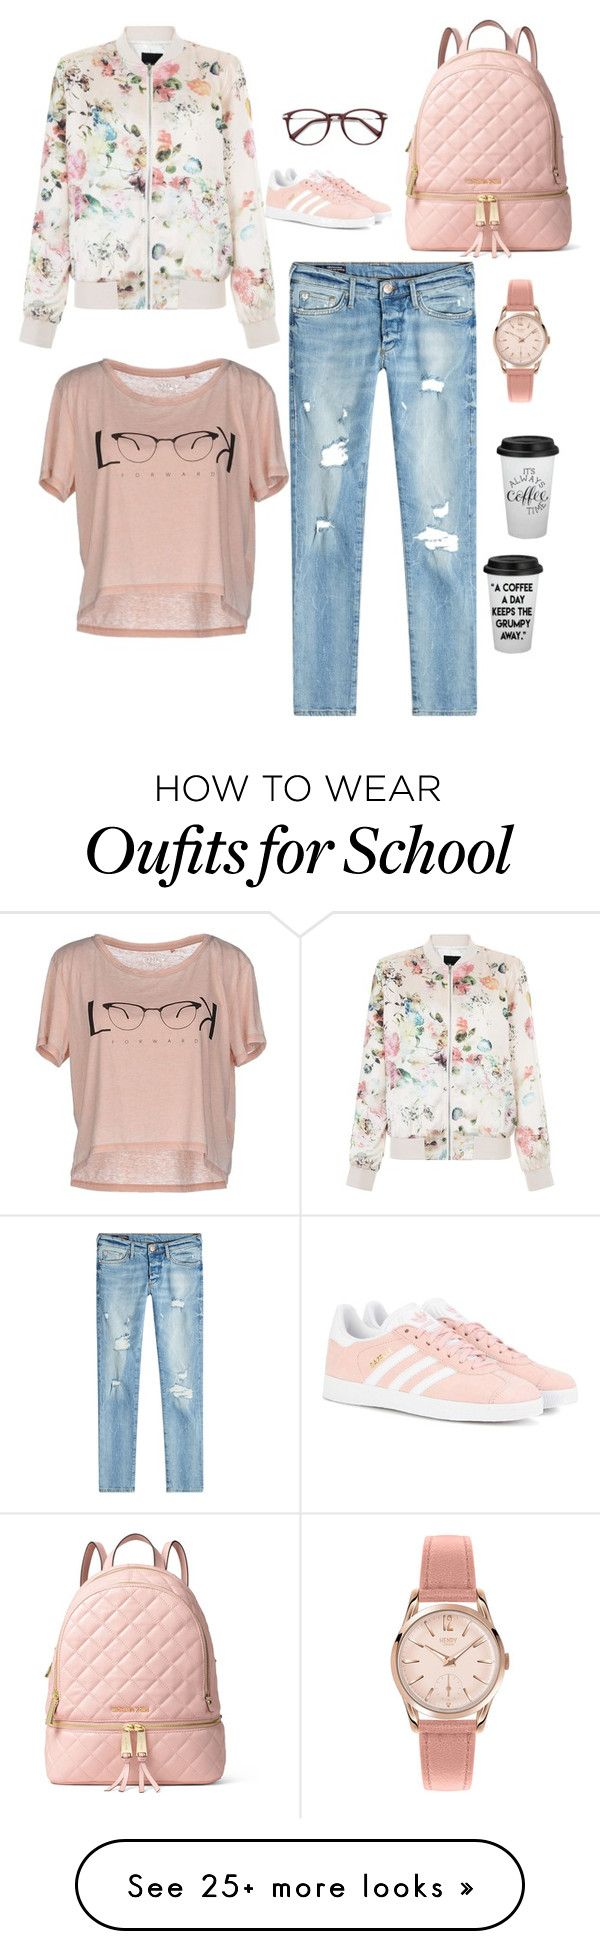 """school outfit"" by jasive-asseff-jamous on Polyvore featuring adidas Originals, New Look, True Religion, ONLY, MICHAEL Michael Kors and Henry London"